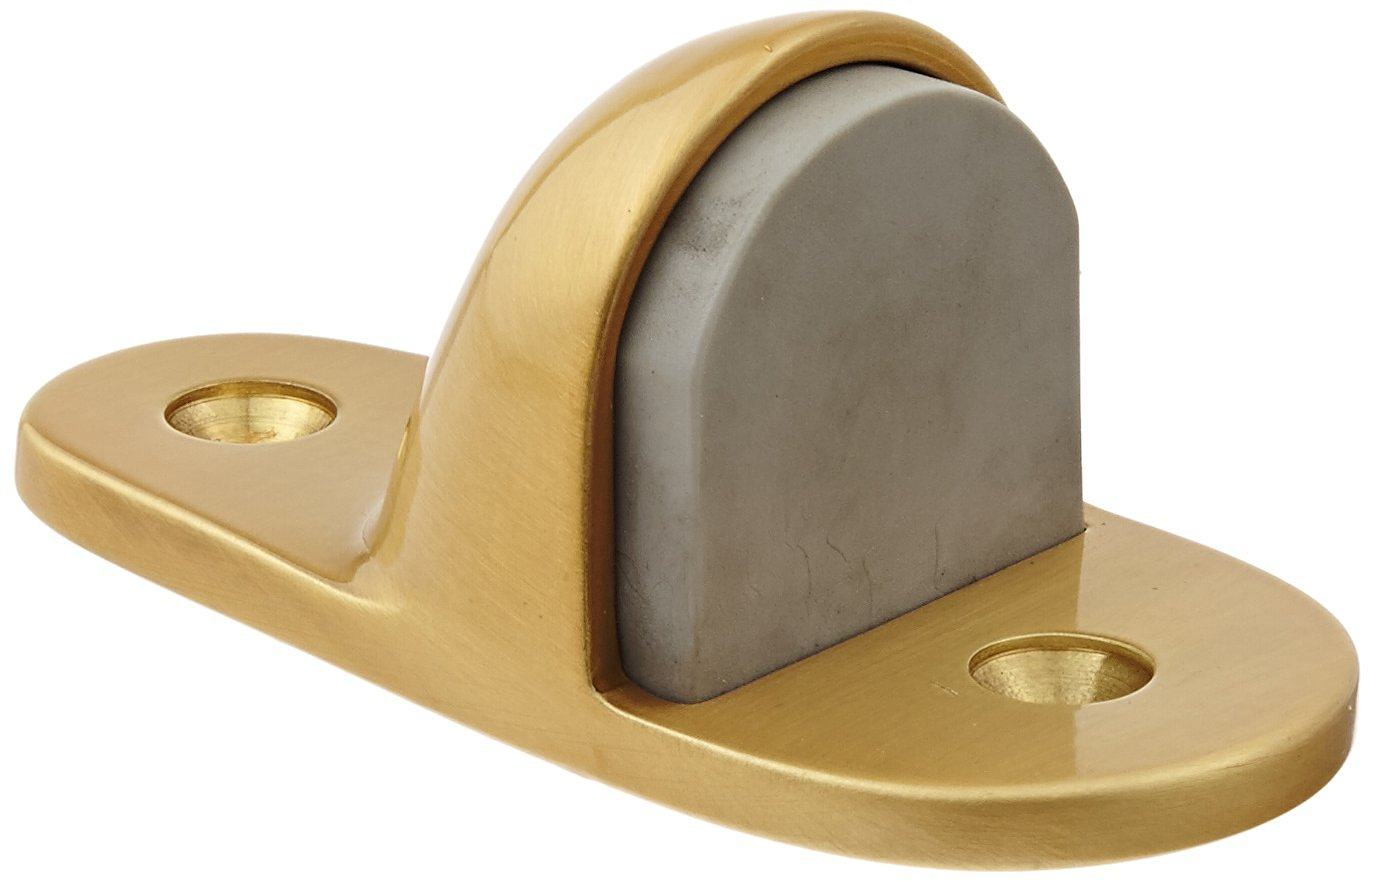 2 Base Width x 4 Base Length 1-1//8 Height Rockwood 445.10B Bronze Heavy Duty Door Stop #12 X 1-1//2 FH SMS Fastener with Plastic Anchor and 2-24 x 1 FH MS Fastener with Lead Anchor Satin Oxidized Oil Rubbed Finish